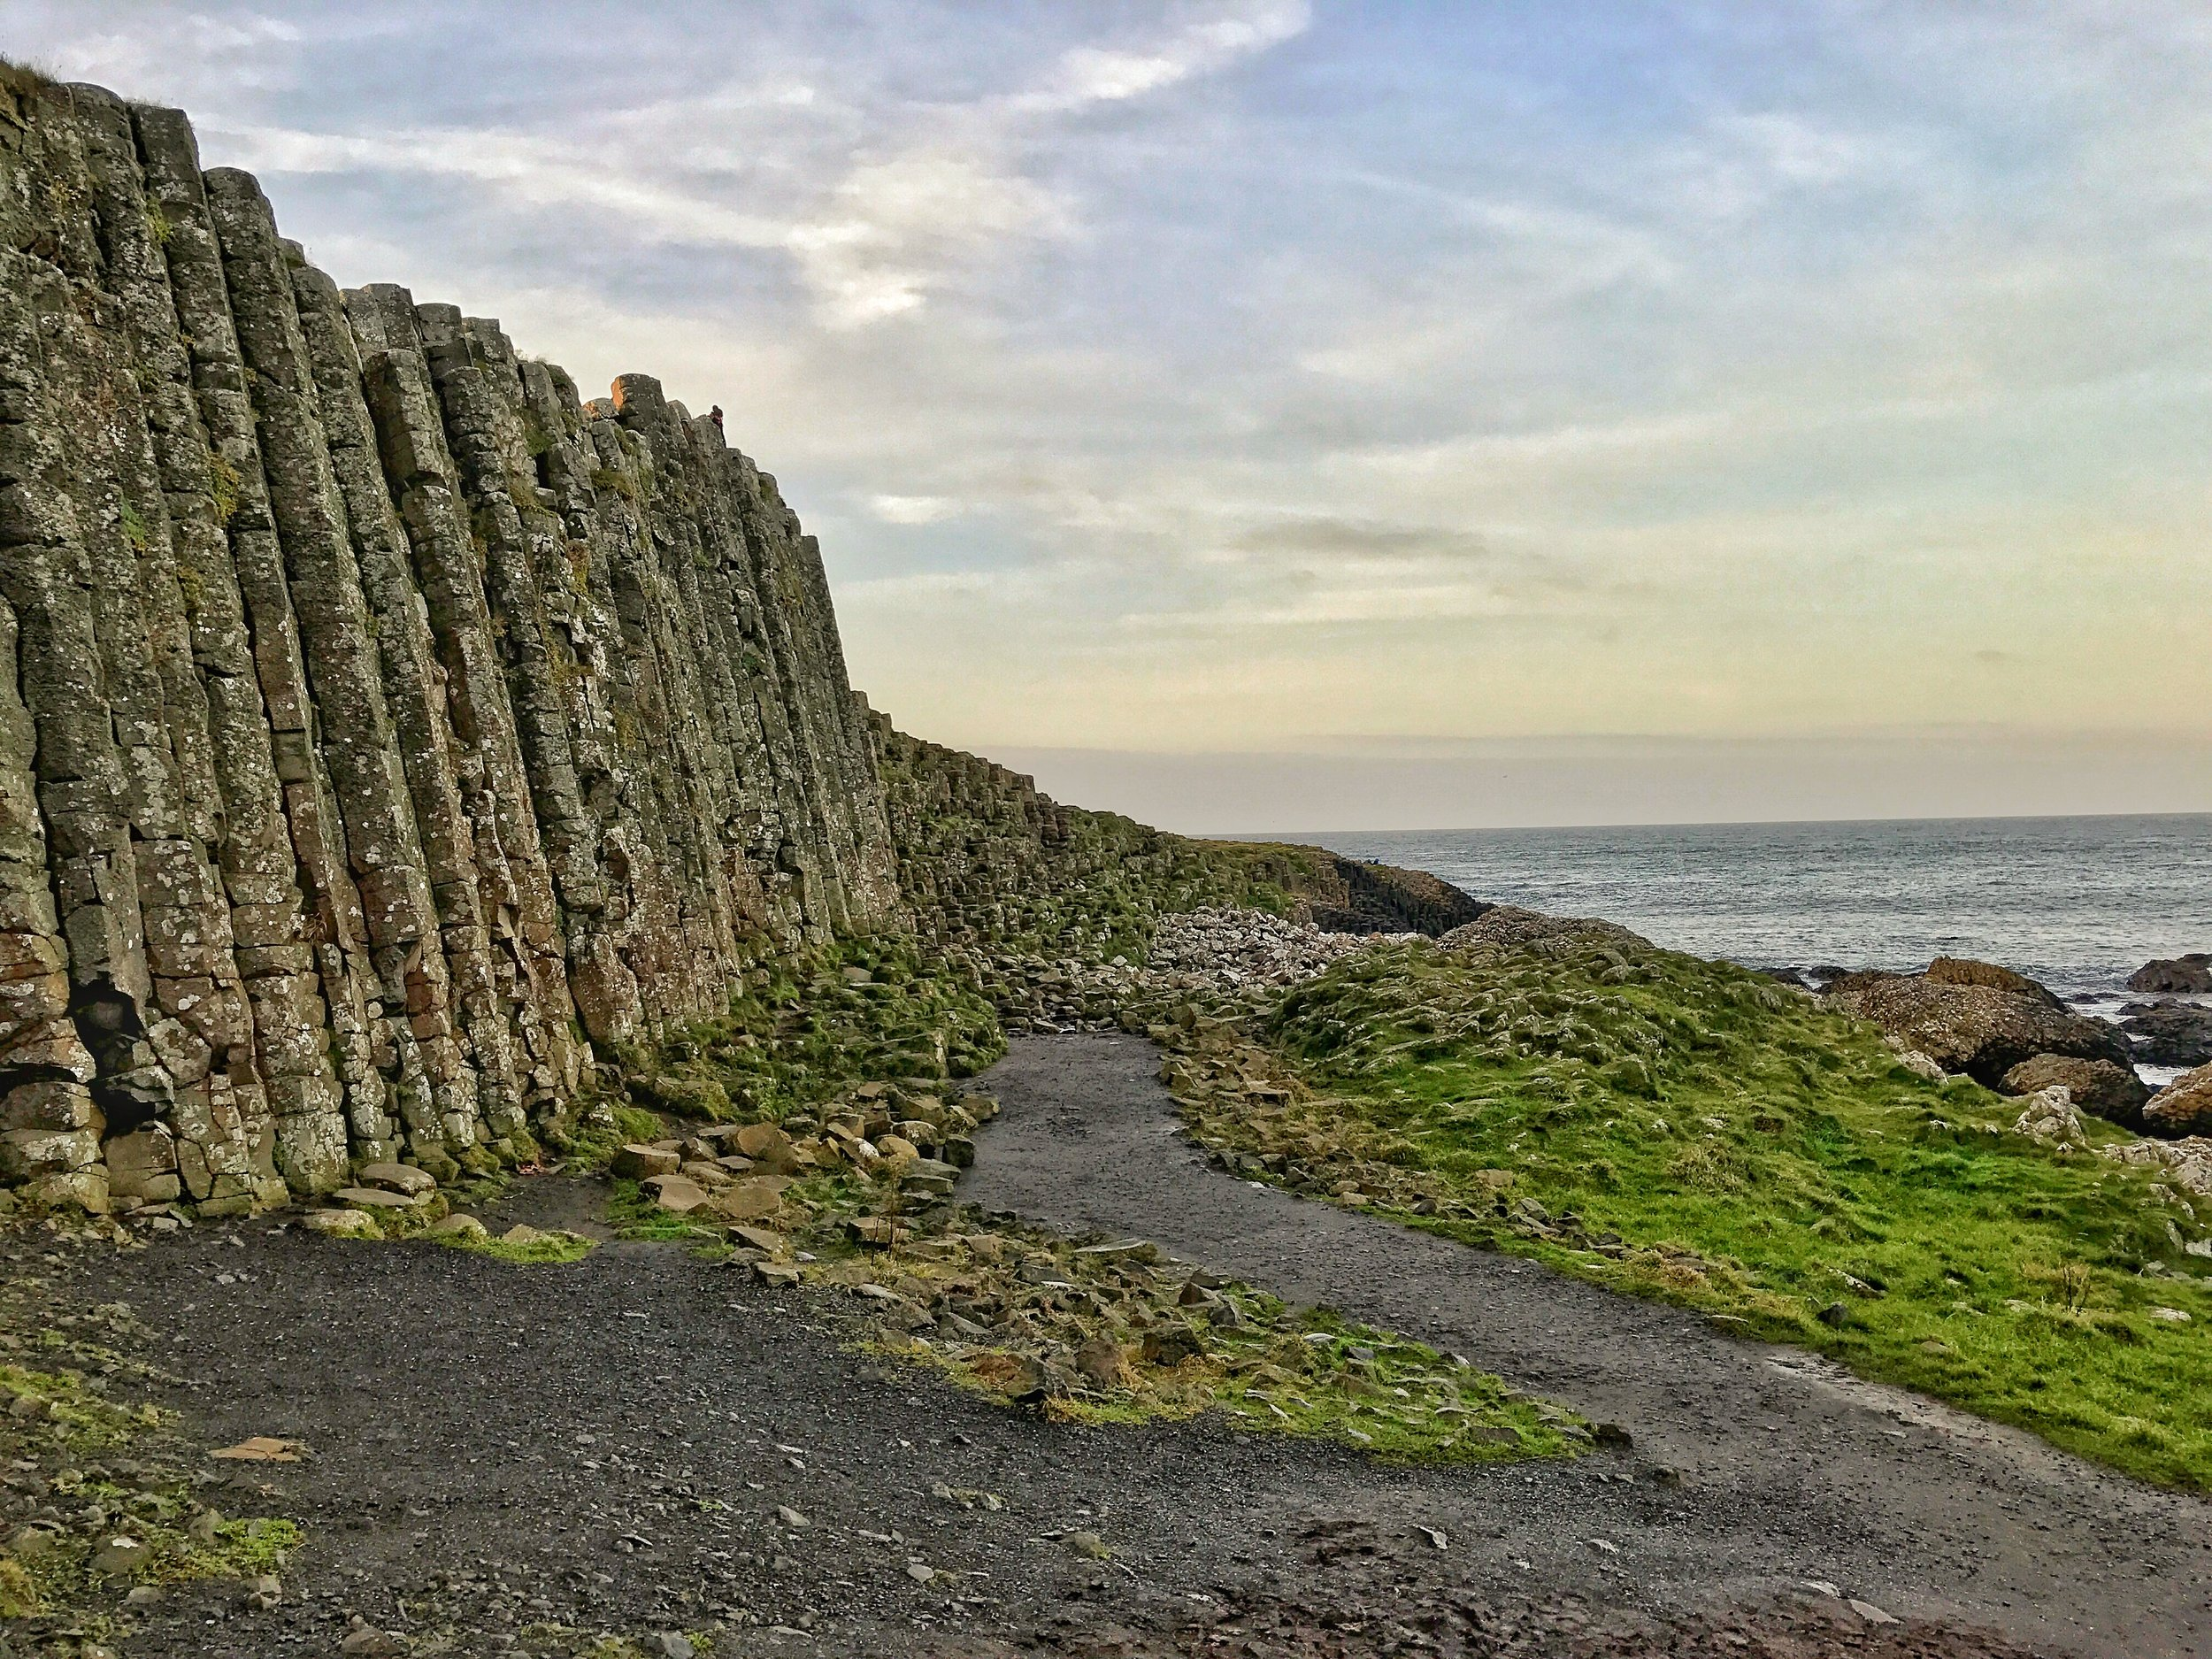 The basalt pillars extend from the Causeway and along through the land owned by the National Trust.